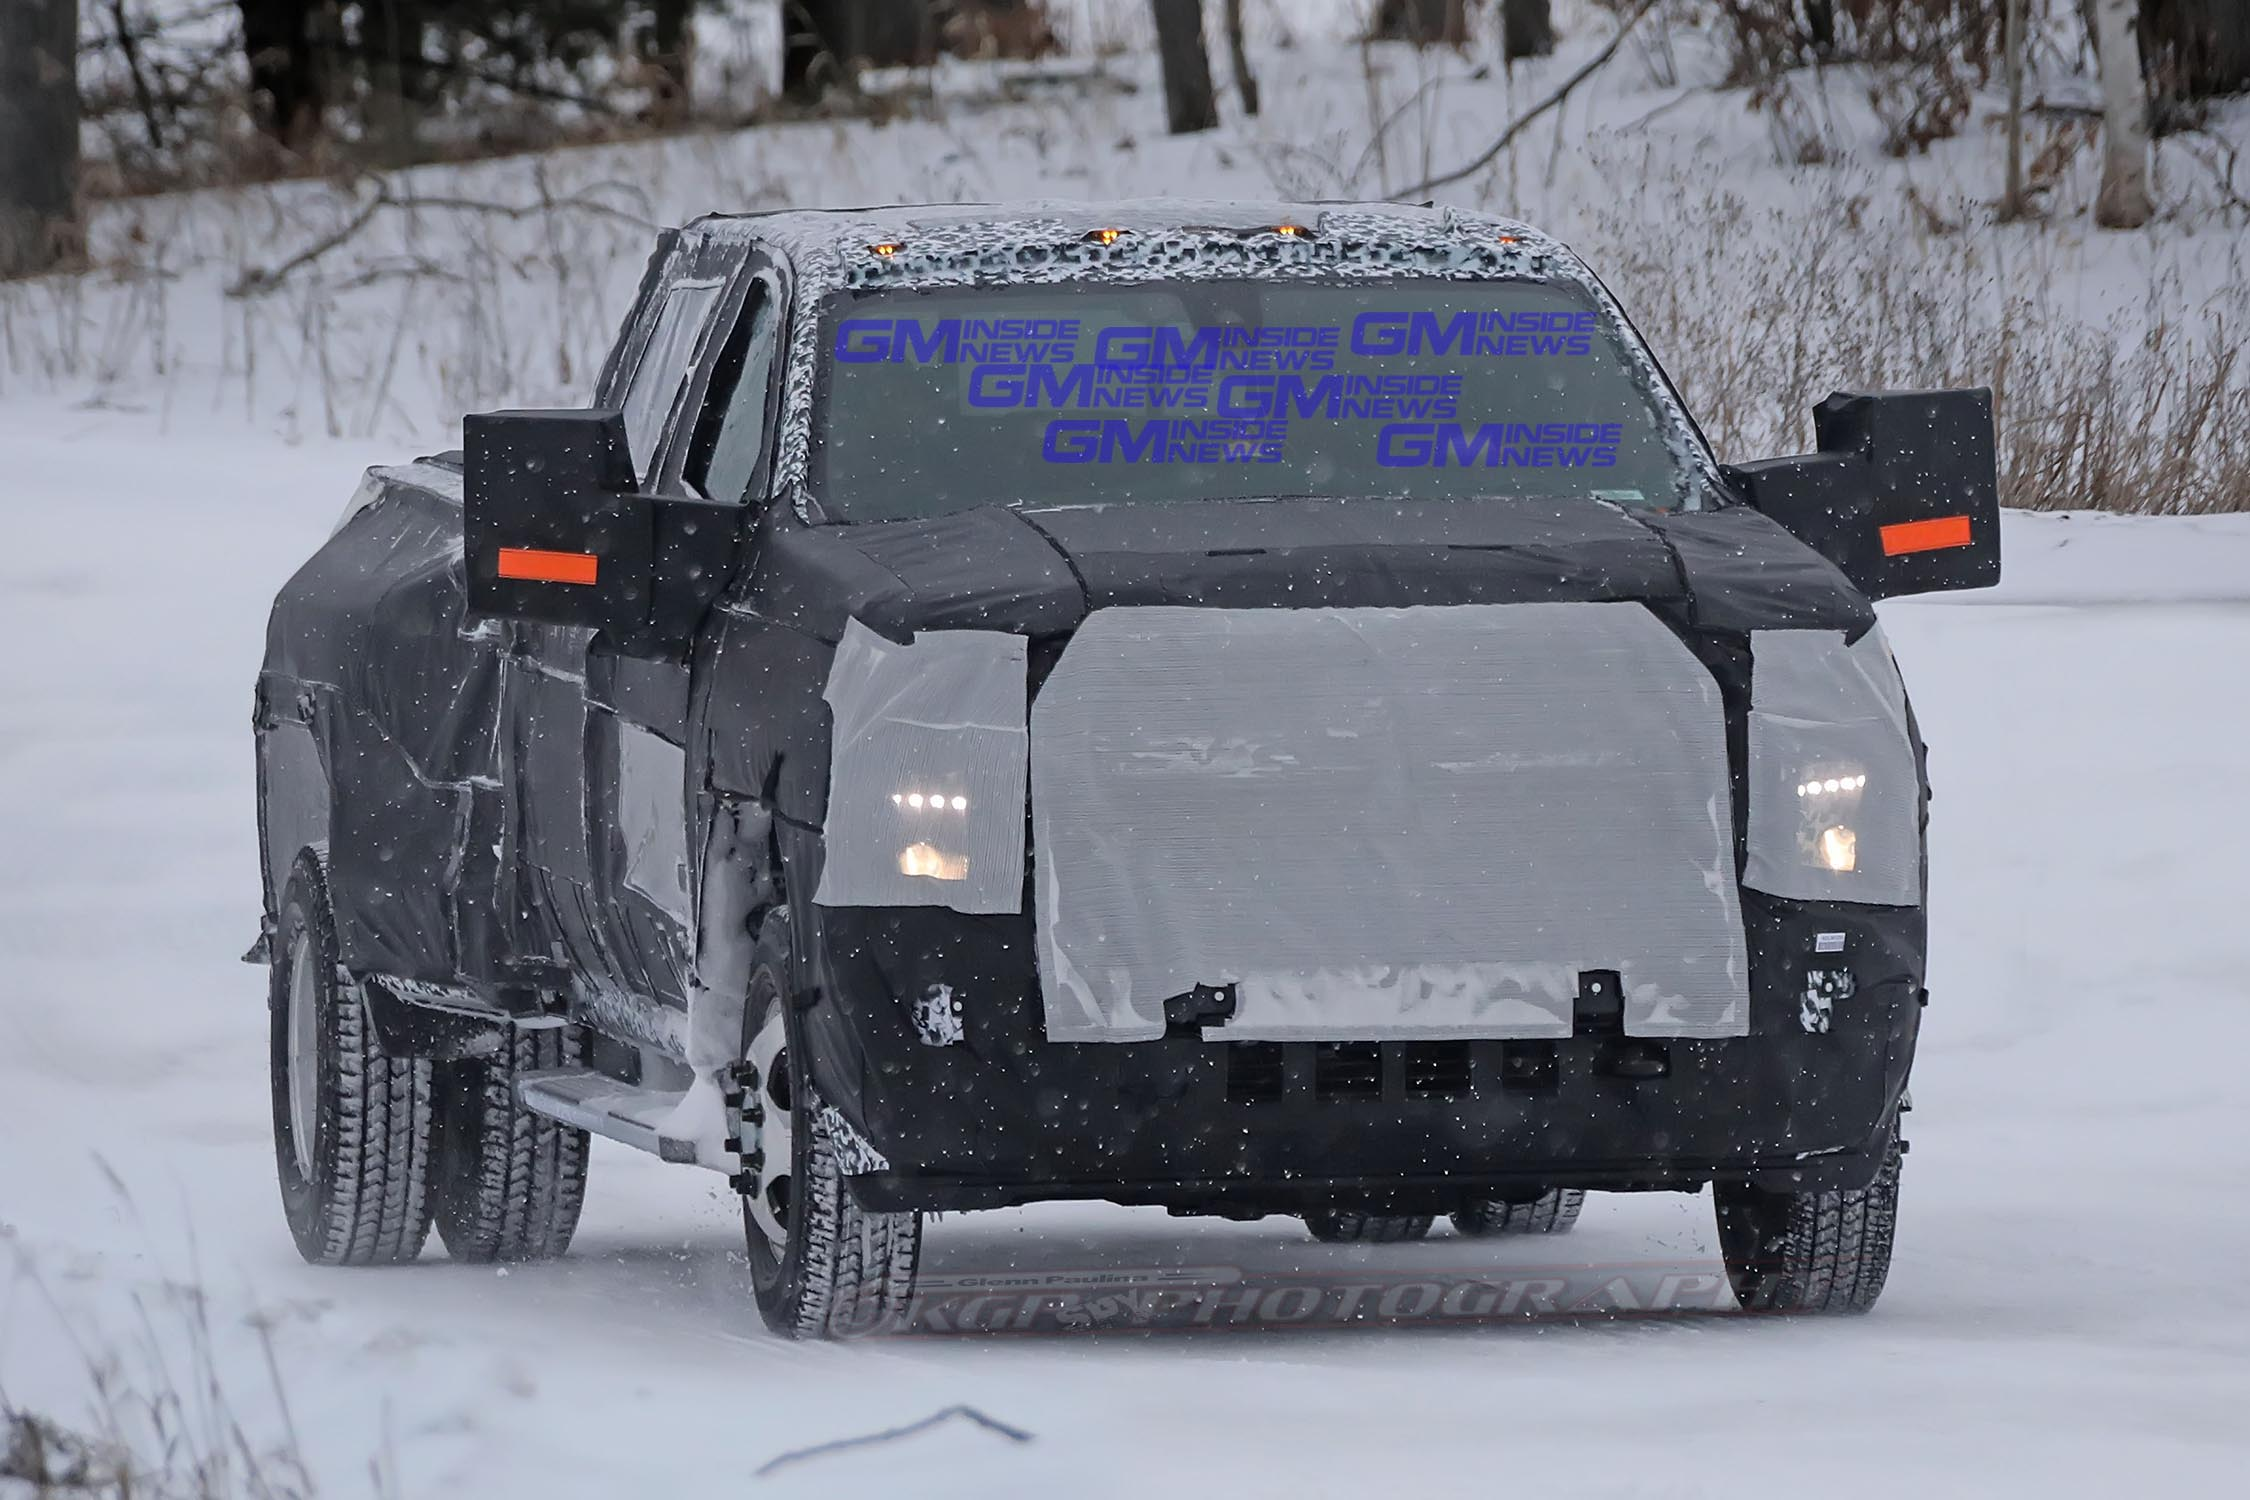 2020 Chevrolet Silverado Hd Spotted Testing In The Snow Gm Inside News